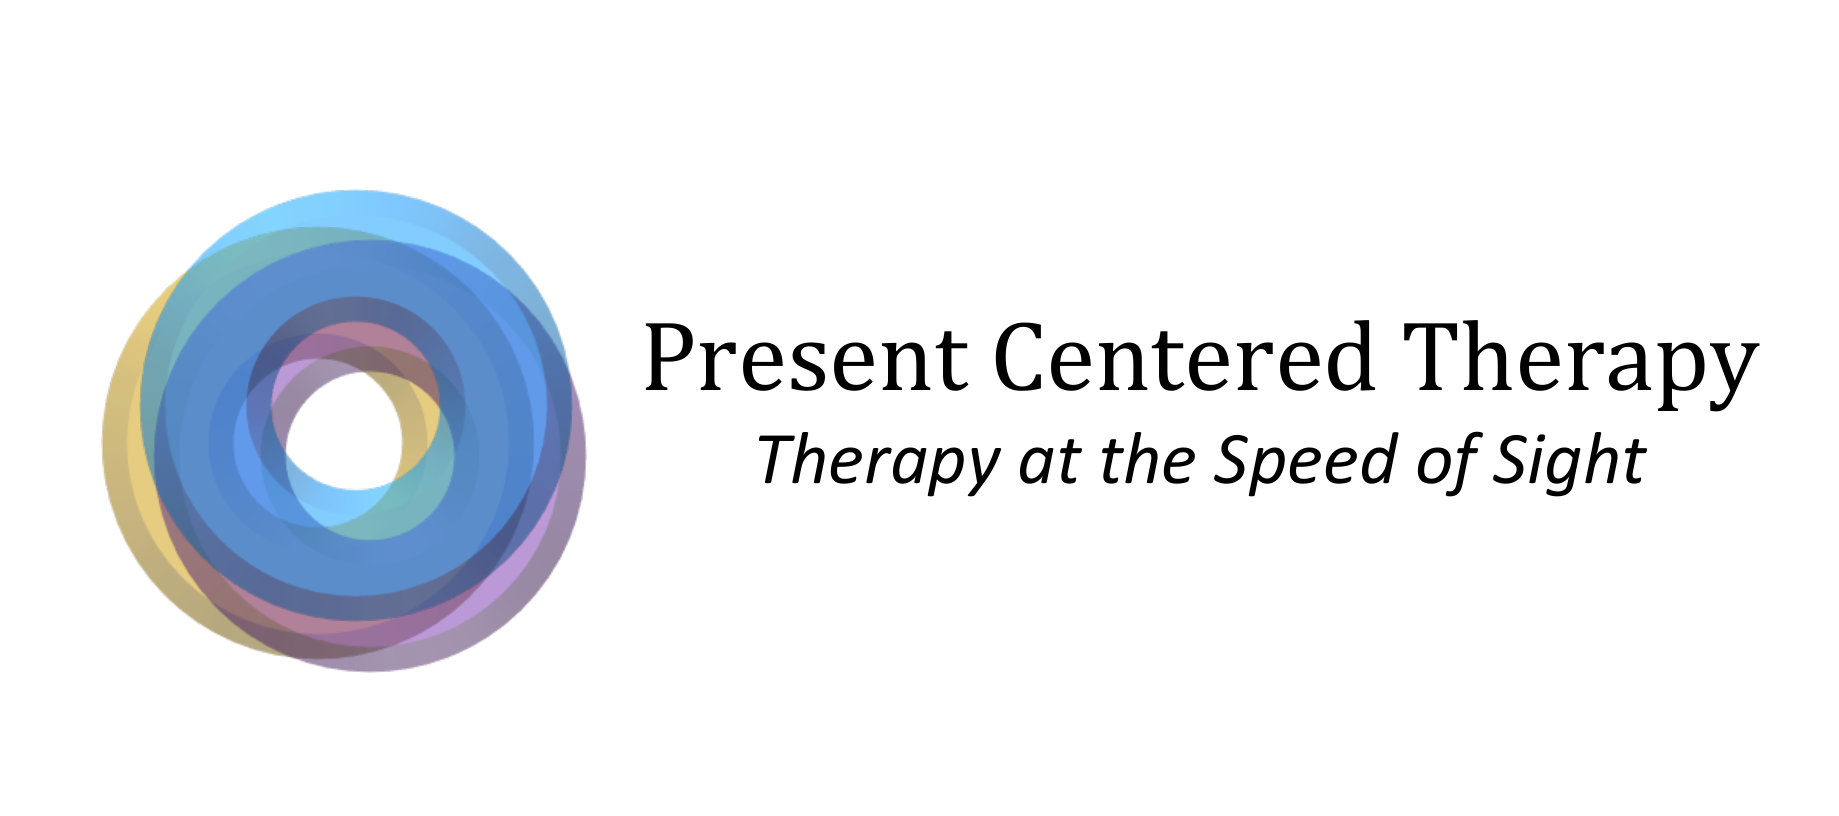 Present Centered Therapy